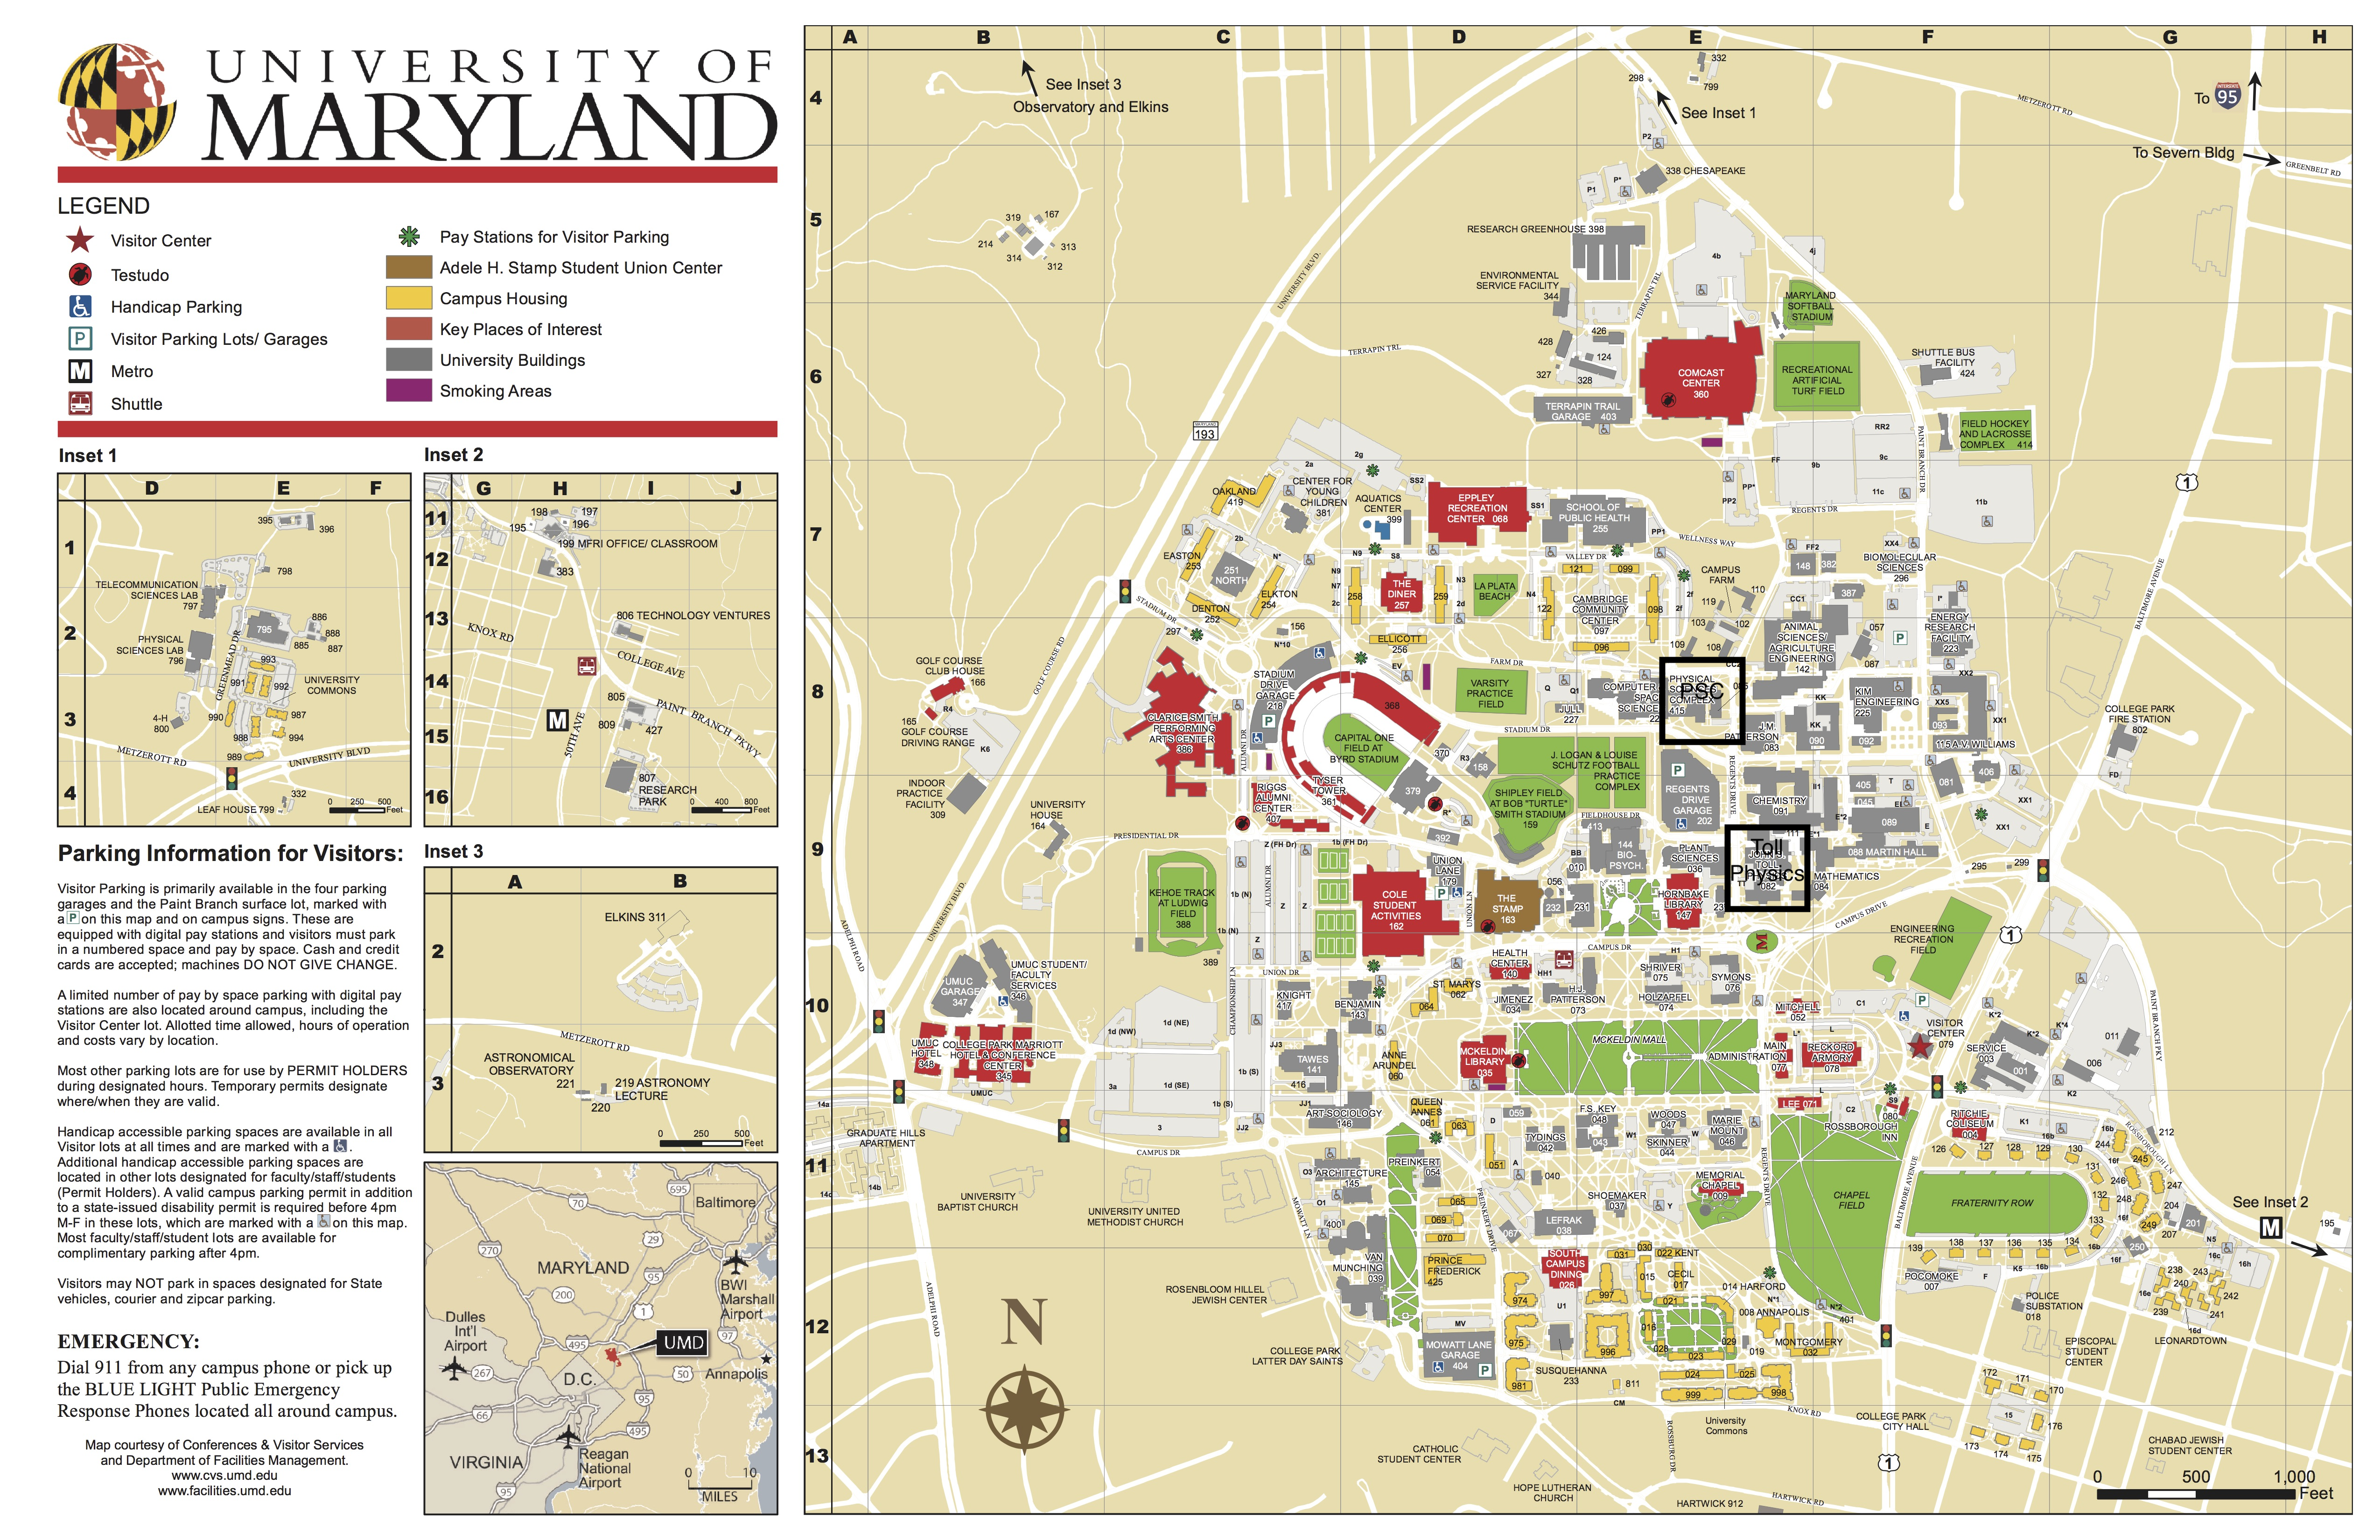 umd map of campus Professor Drew Baden Physics Dept University Of Maryland umd map of campus